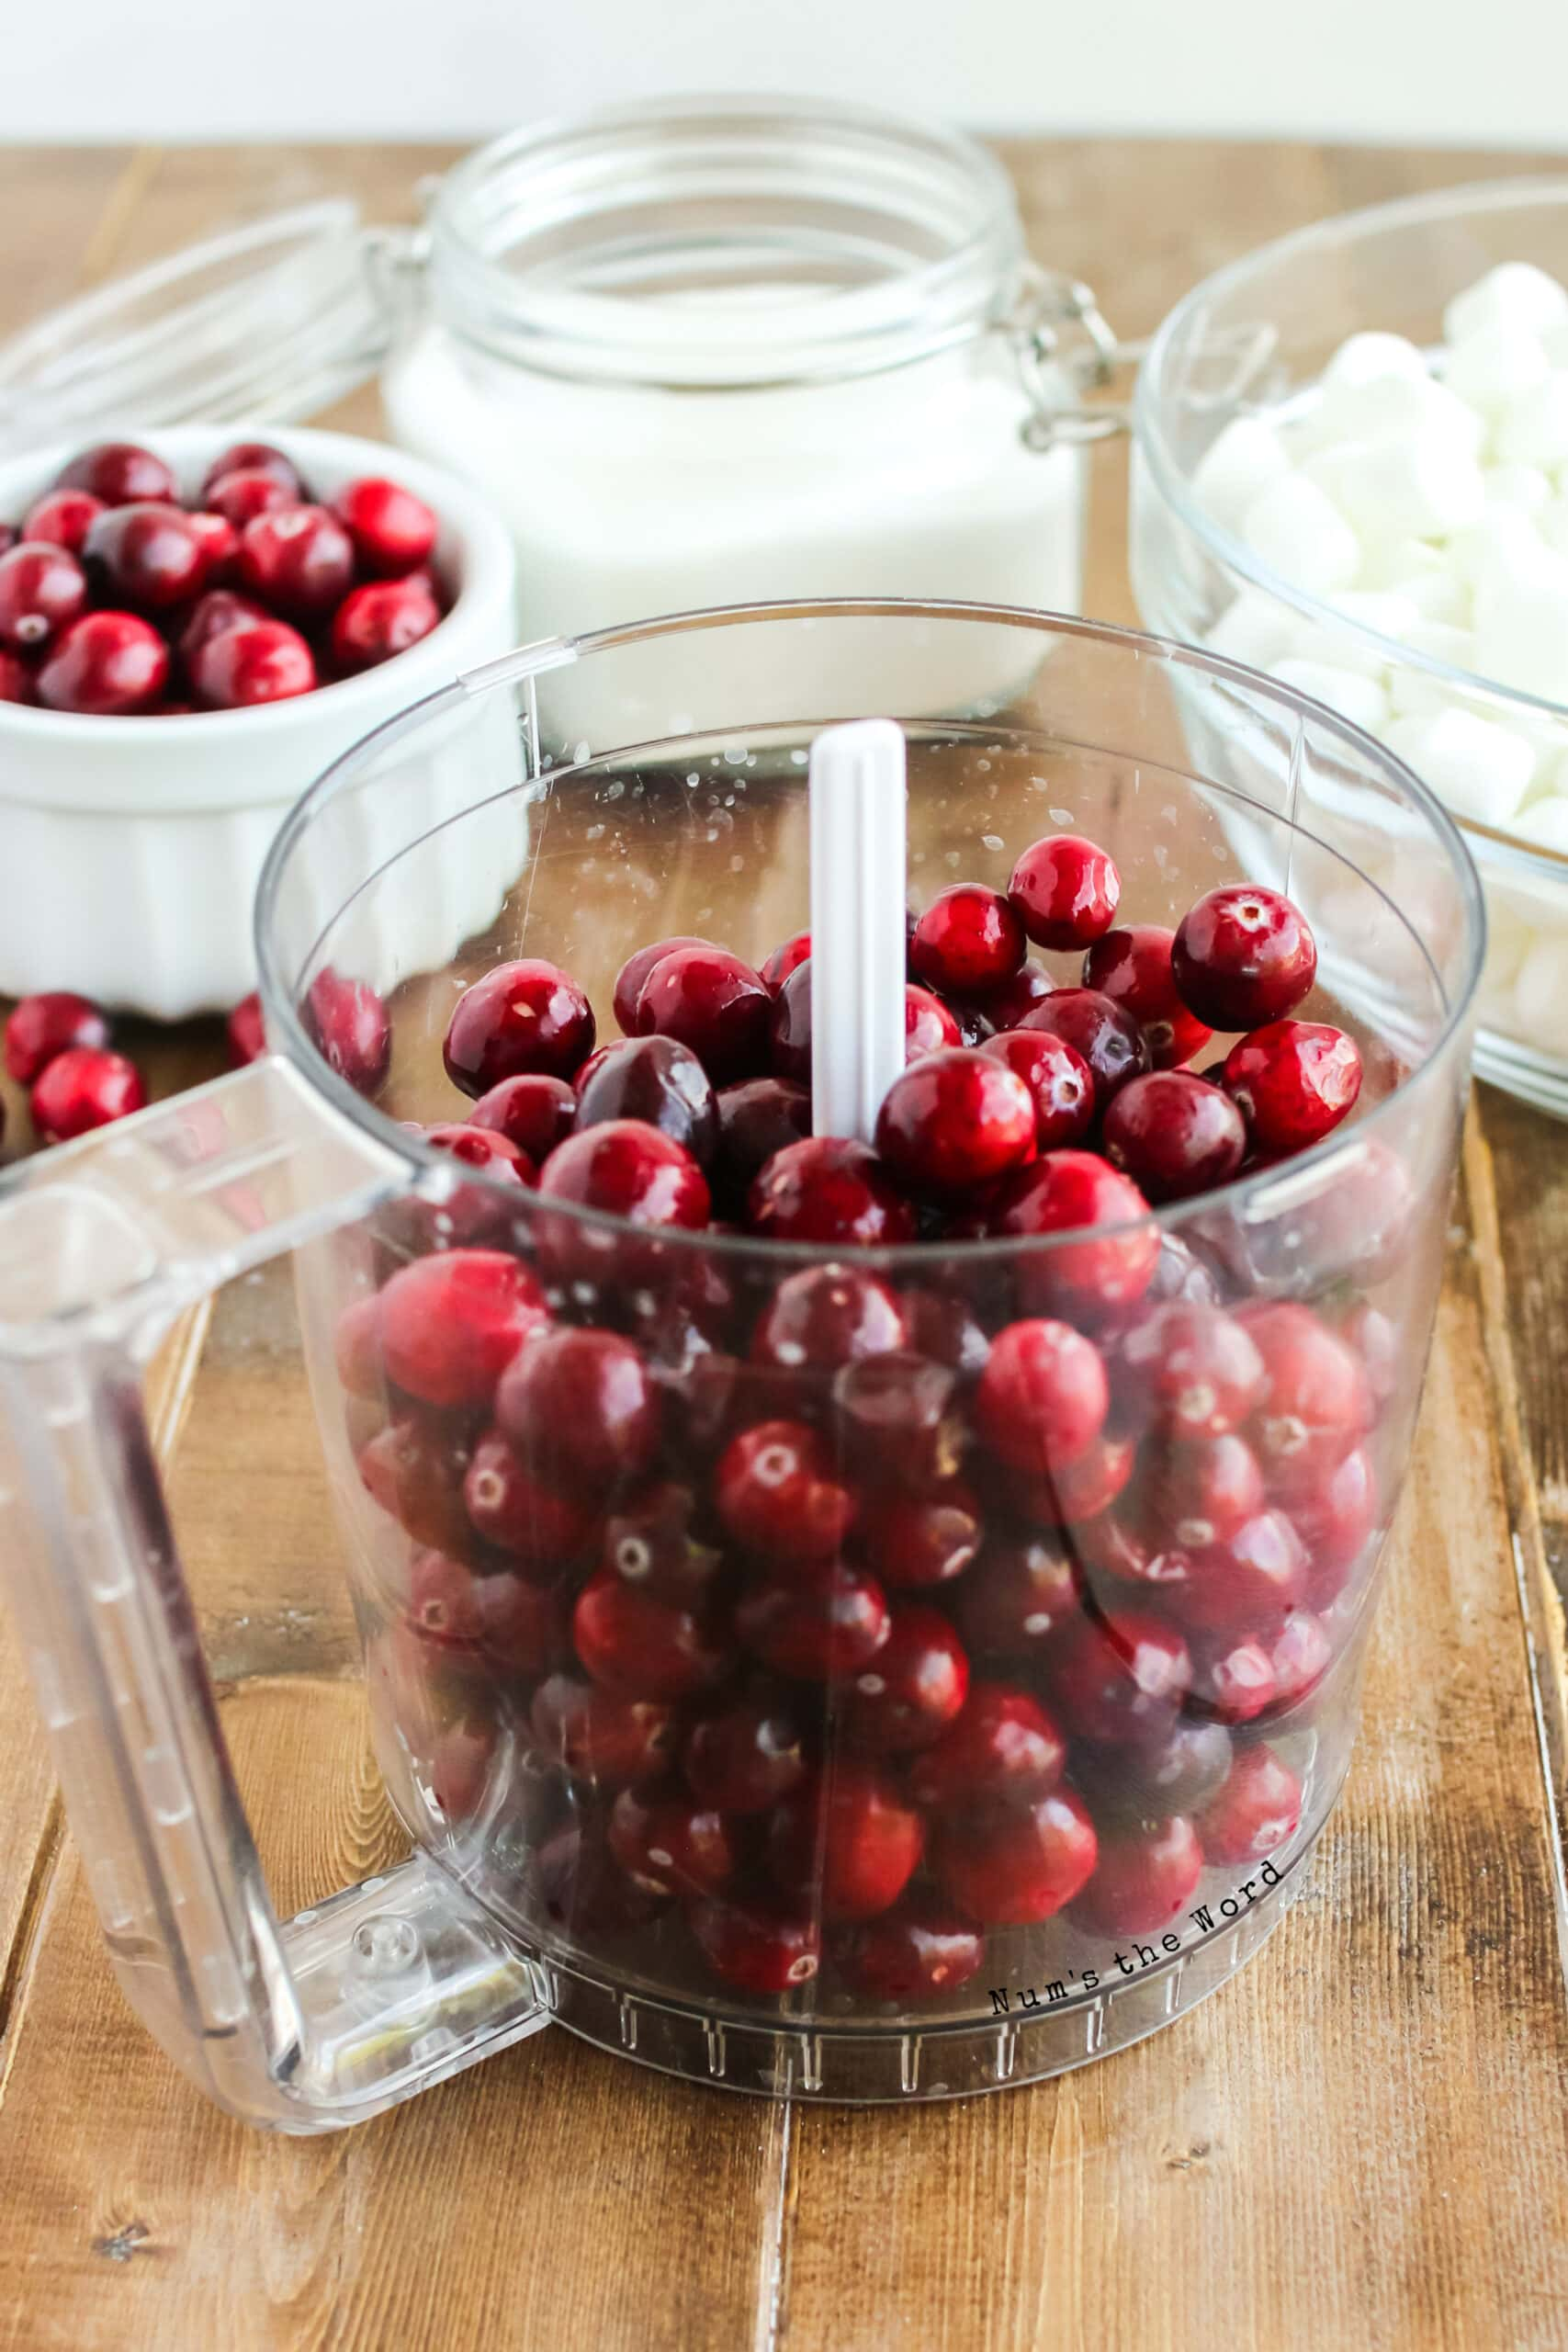 fresh cranberries in a food processor.